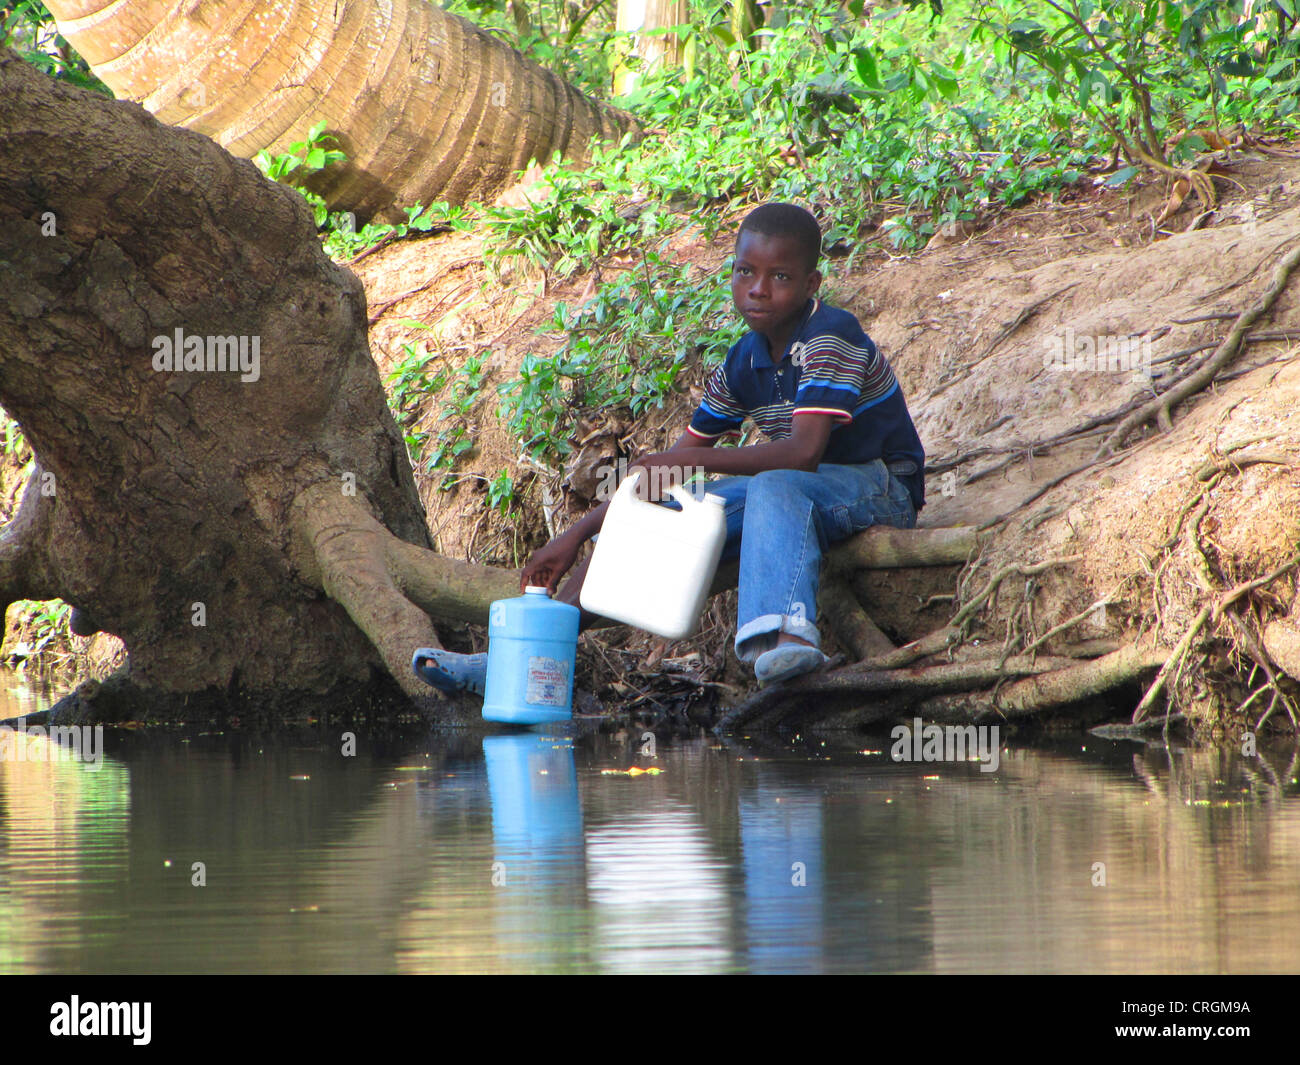 boy fetching water from a river with canister, Haiti, Grande Anse, Abricots - Stock Image